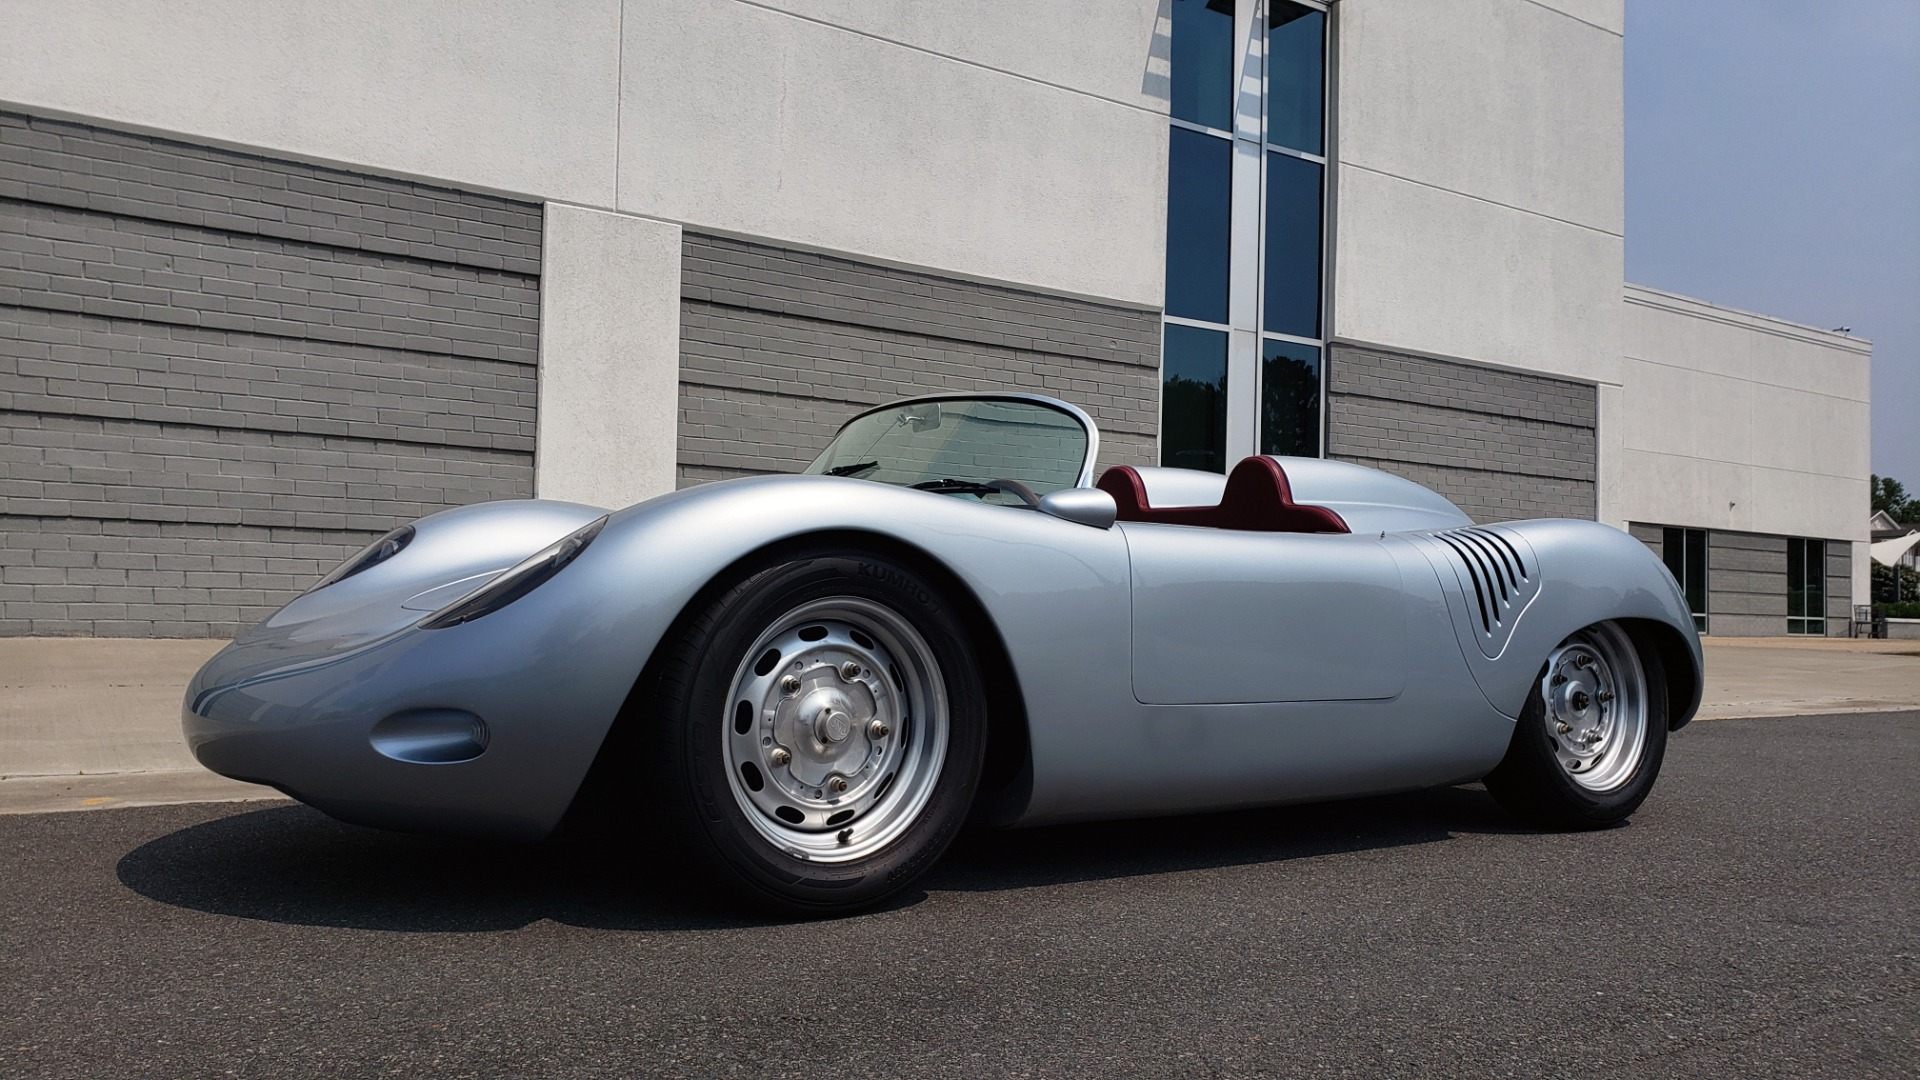 Used 1959 Porsche 718 RSK SPYDER REPLICA / 2275CC W/44MM WEBER (160HP) / 4-SPD MANUAL for sale $39,999 at Formula Imports in Charlotte NC 28227 2